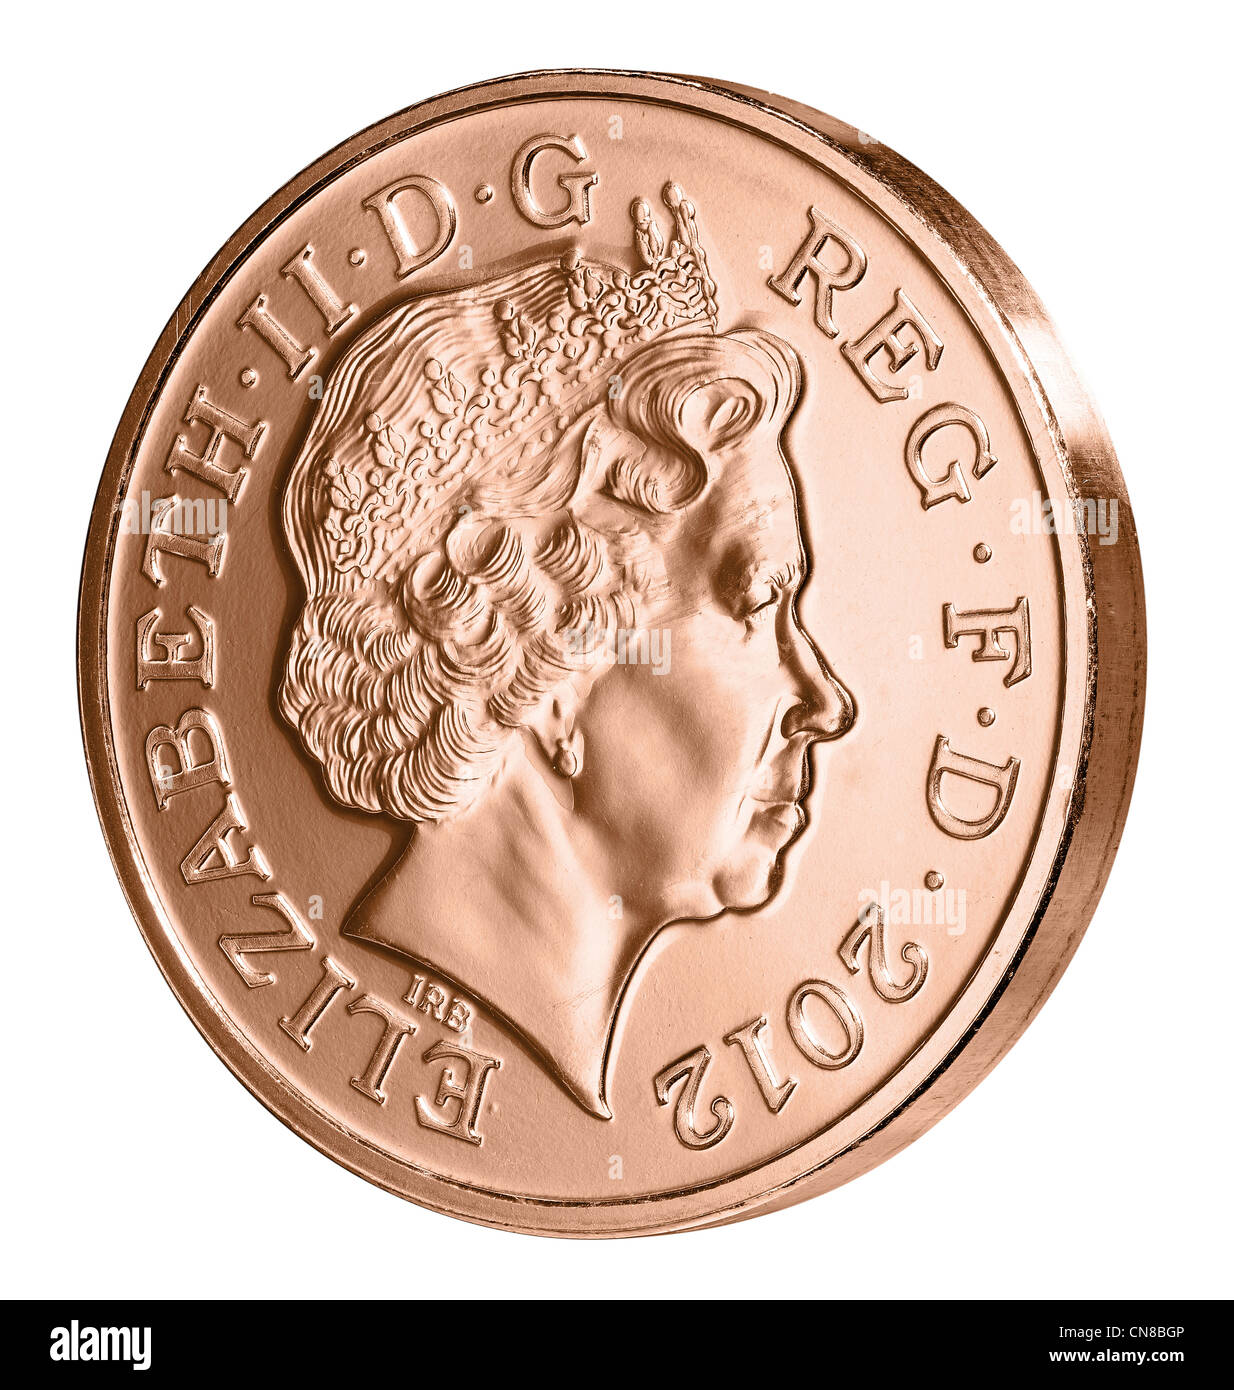 2p two pence coin side on heads obverse 2012 - Stock Image